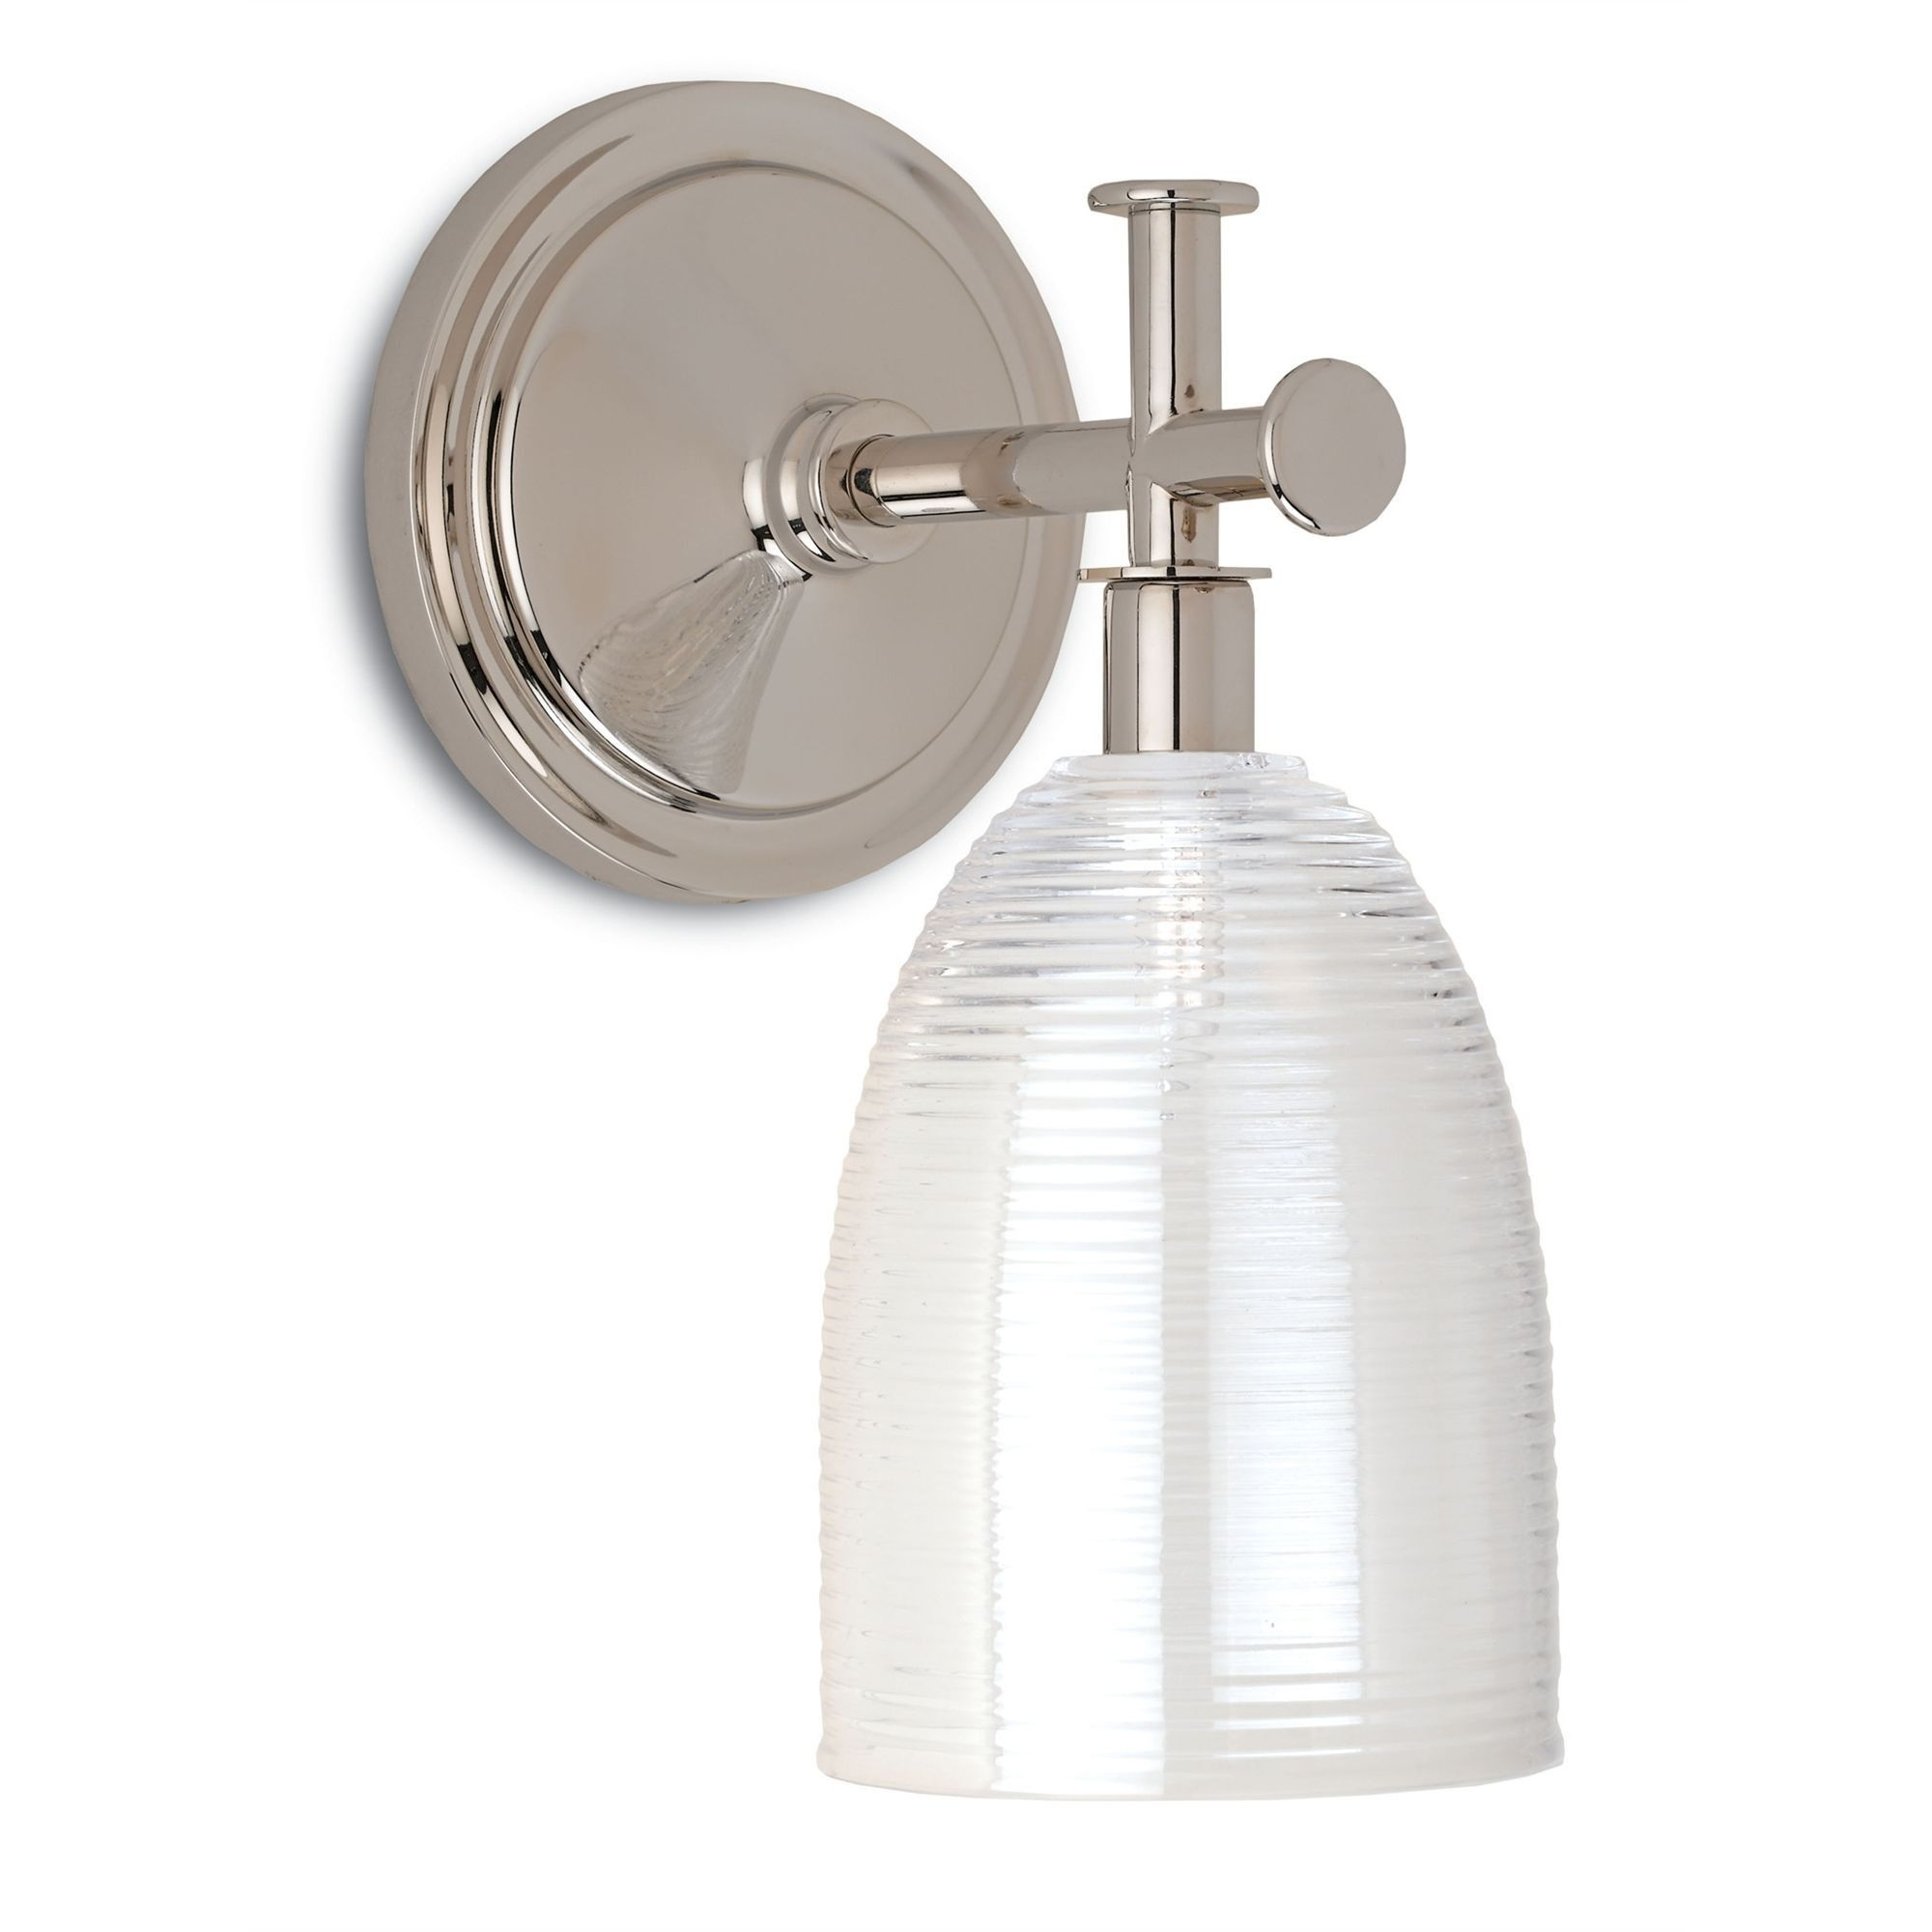 Currey and Company Sylvan Wall Sconce | Sconces and Wall sconces - CC-5213 | Currey and Company Sylvan Wall Sconce